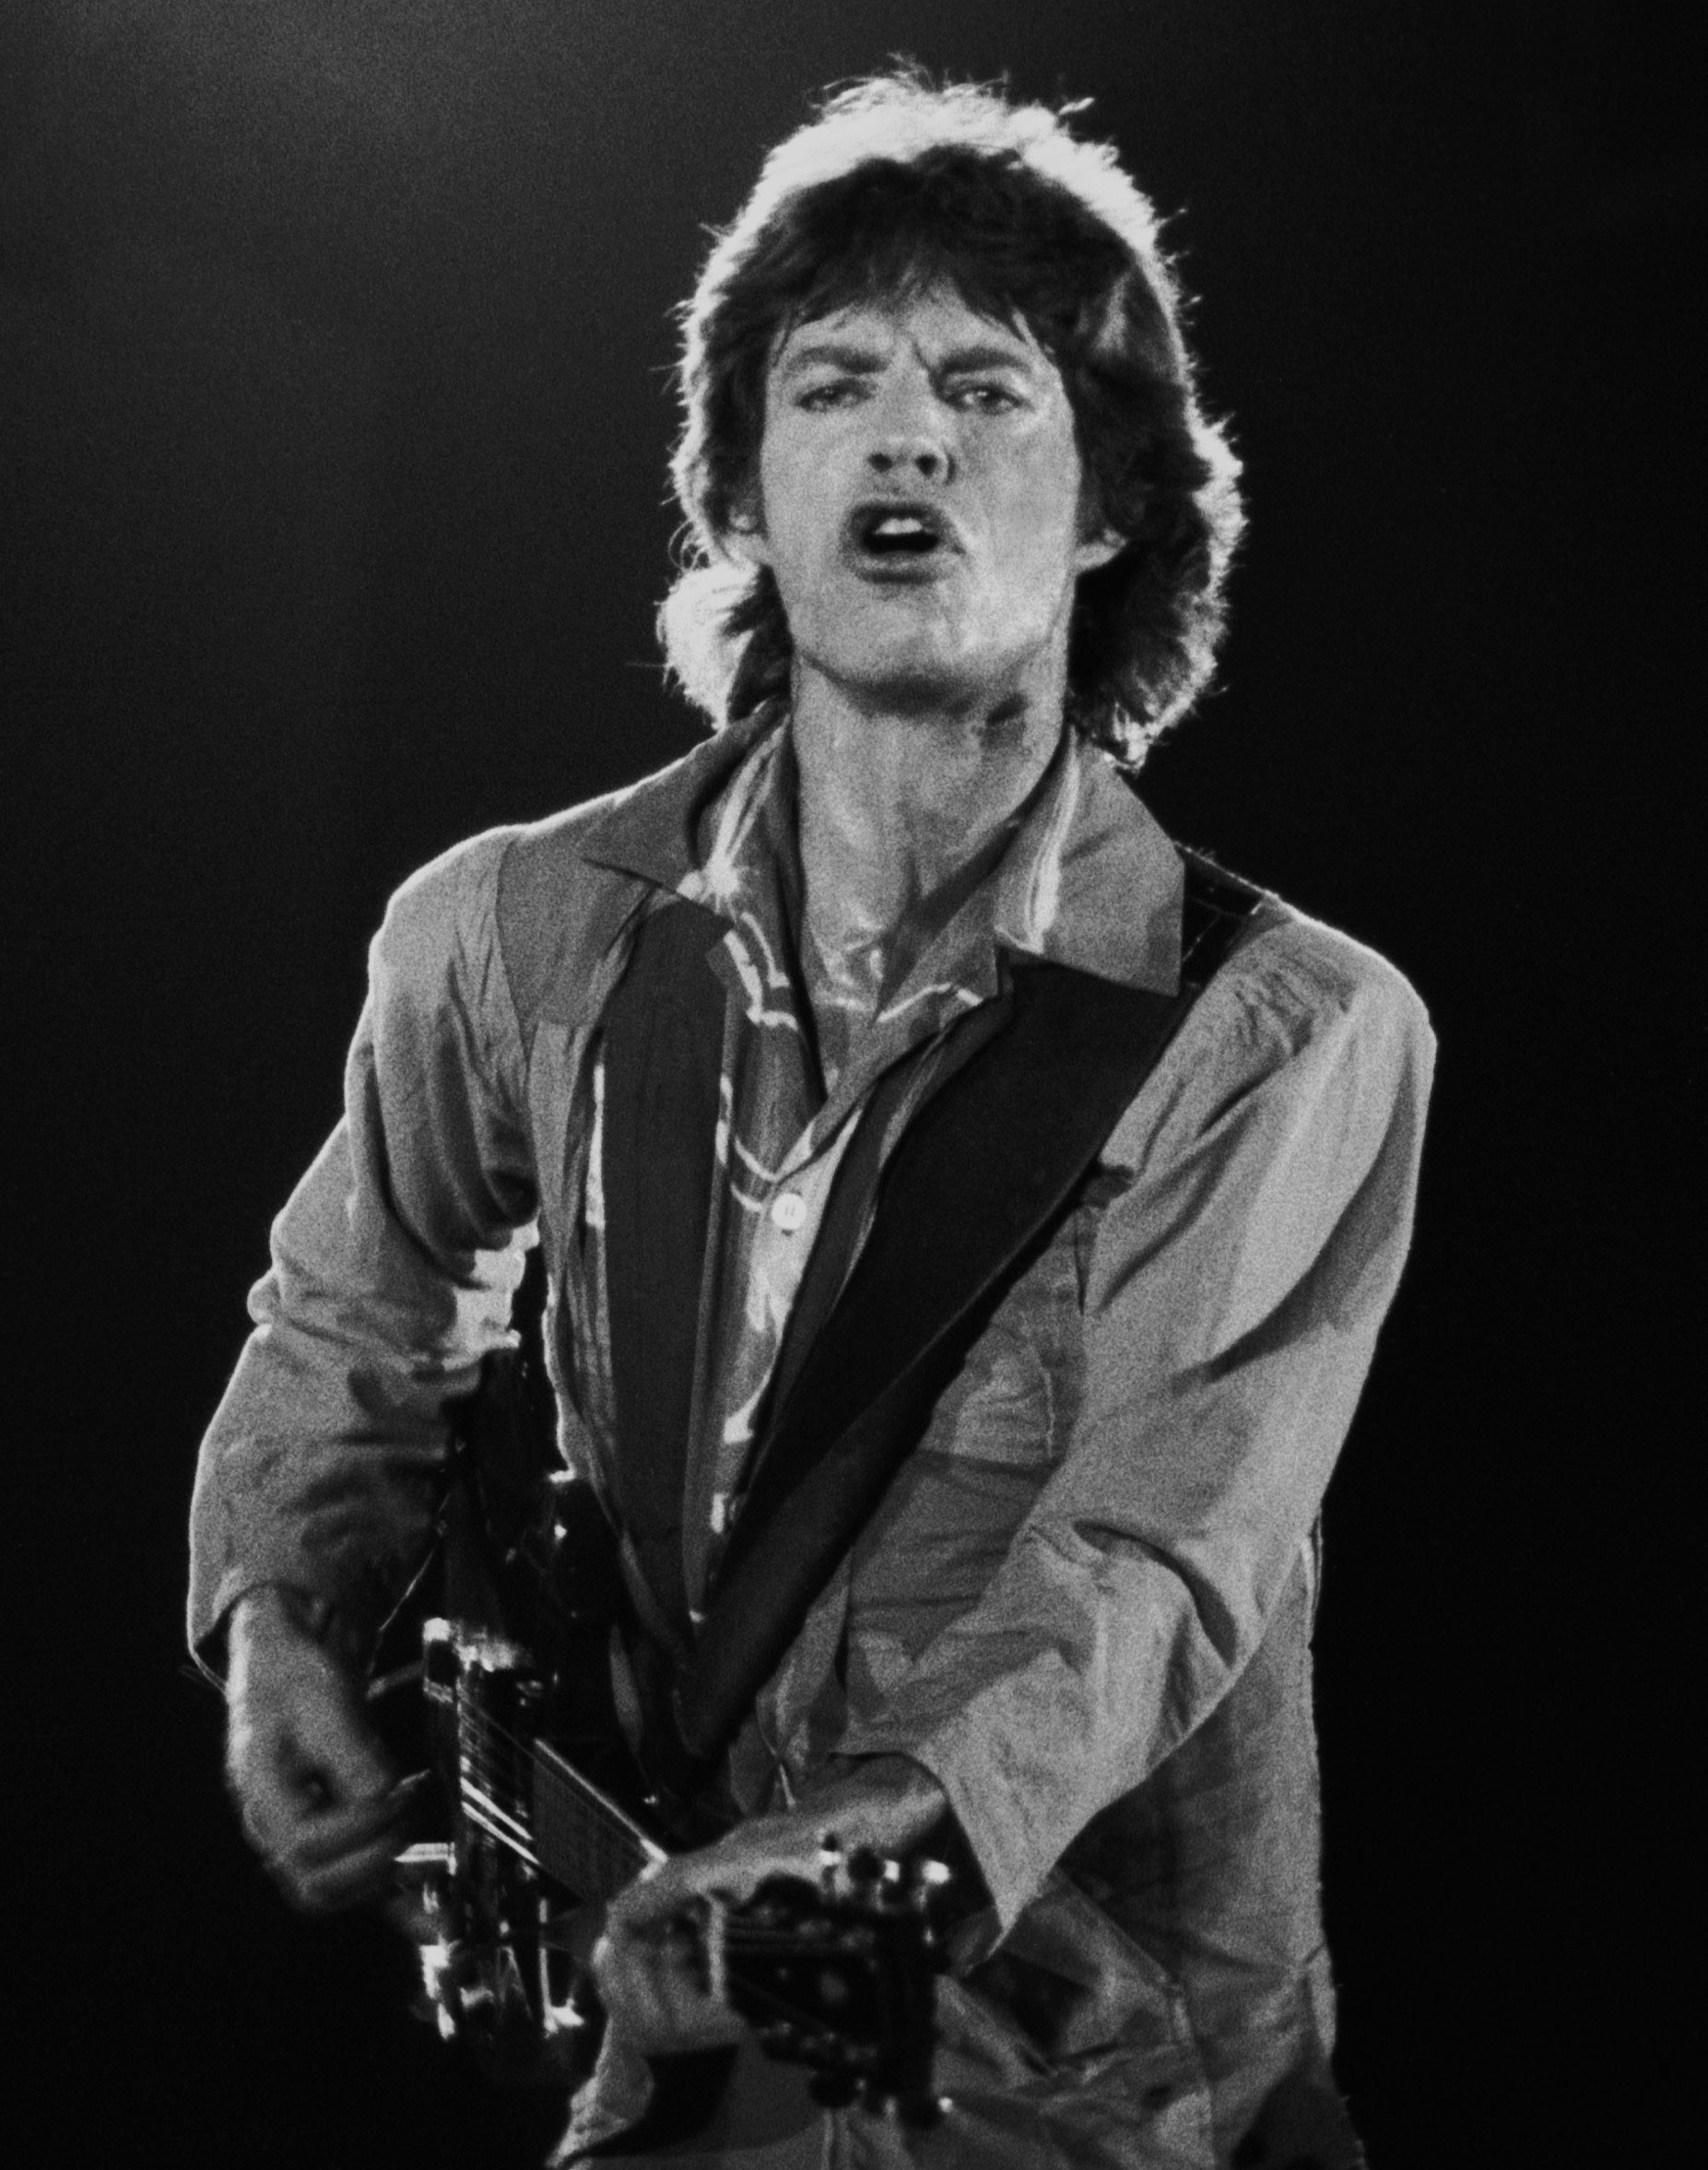 Mick Jagger quotes (24 quotes)   Quotes of famous people